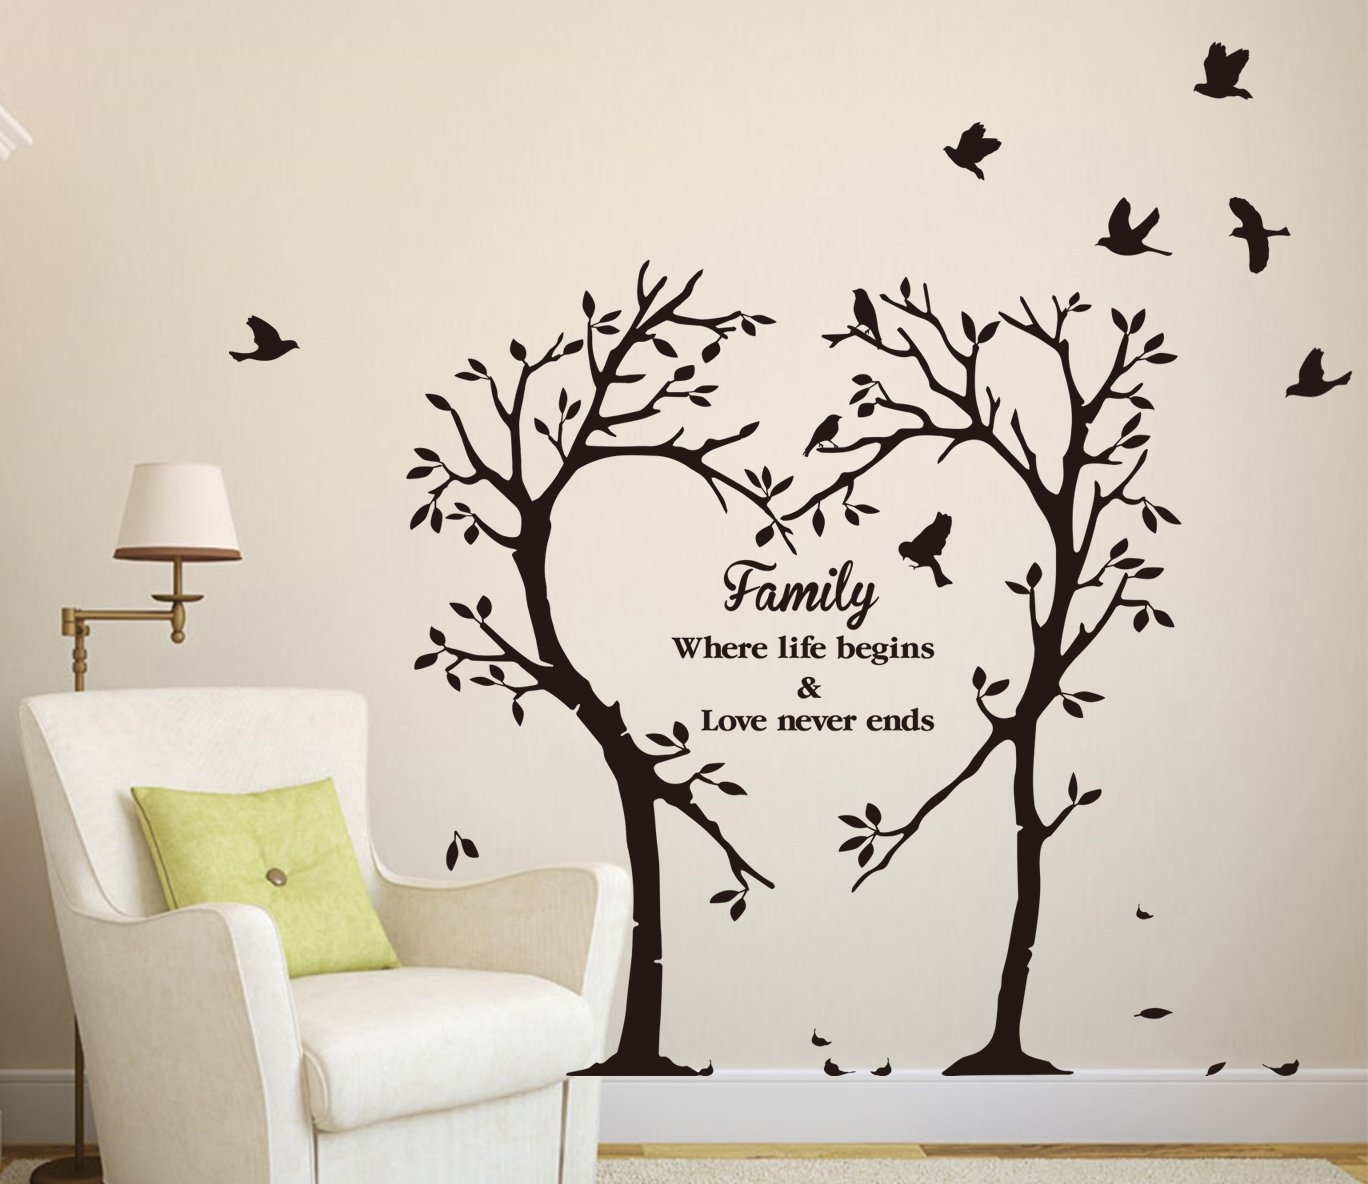 Large Family Inspirational Love Tree Wall Art Sticker, Wall Sticker Intended For Most Recent Wall Tree Art (Gallery 7 of 20)